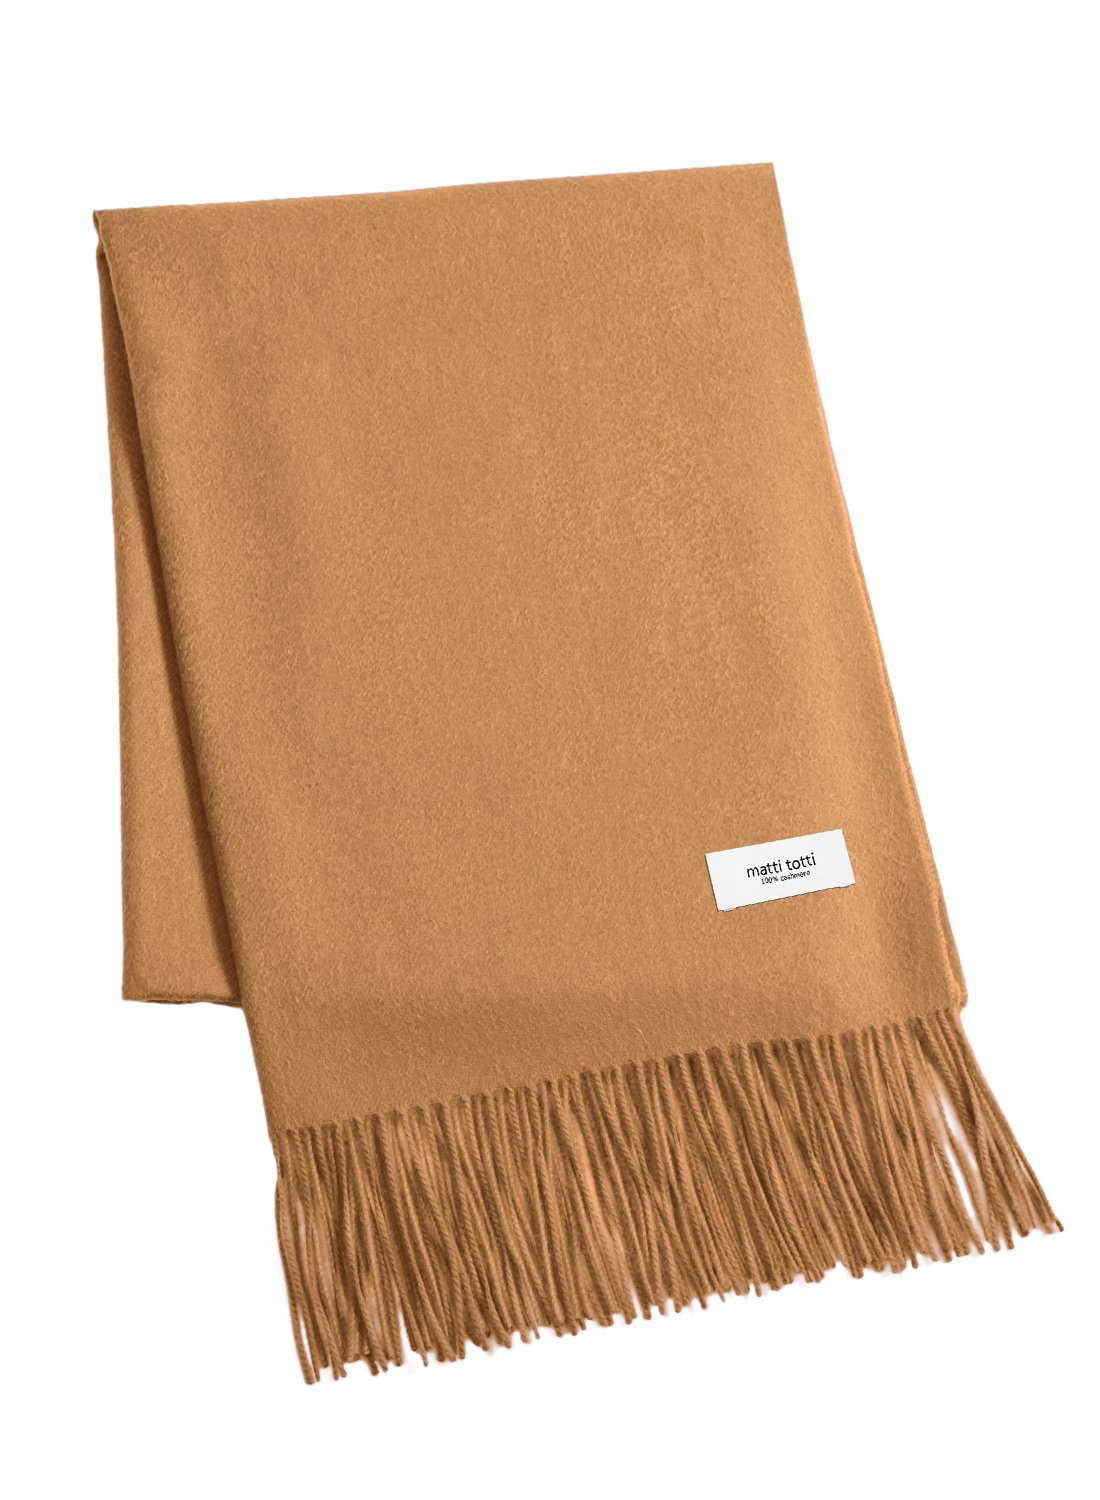 Camel 100% Cashmere Shawl Stole Women Gift Scarves Wrap Blanket A1614B1-16